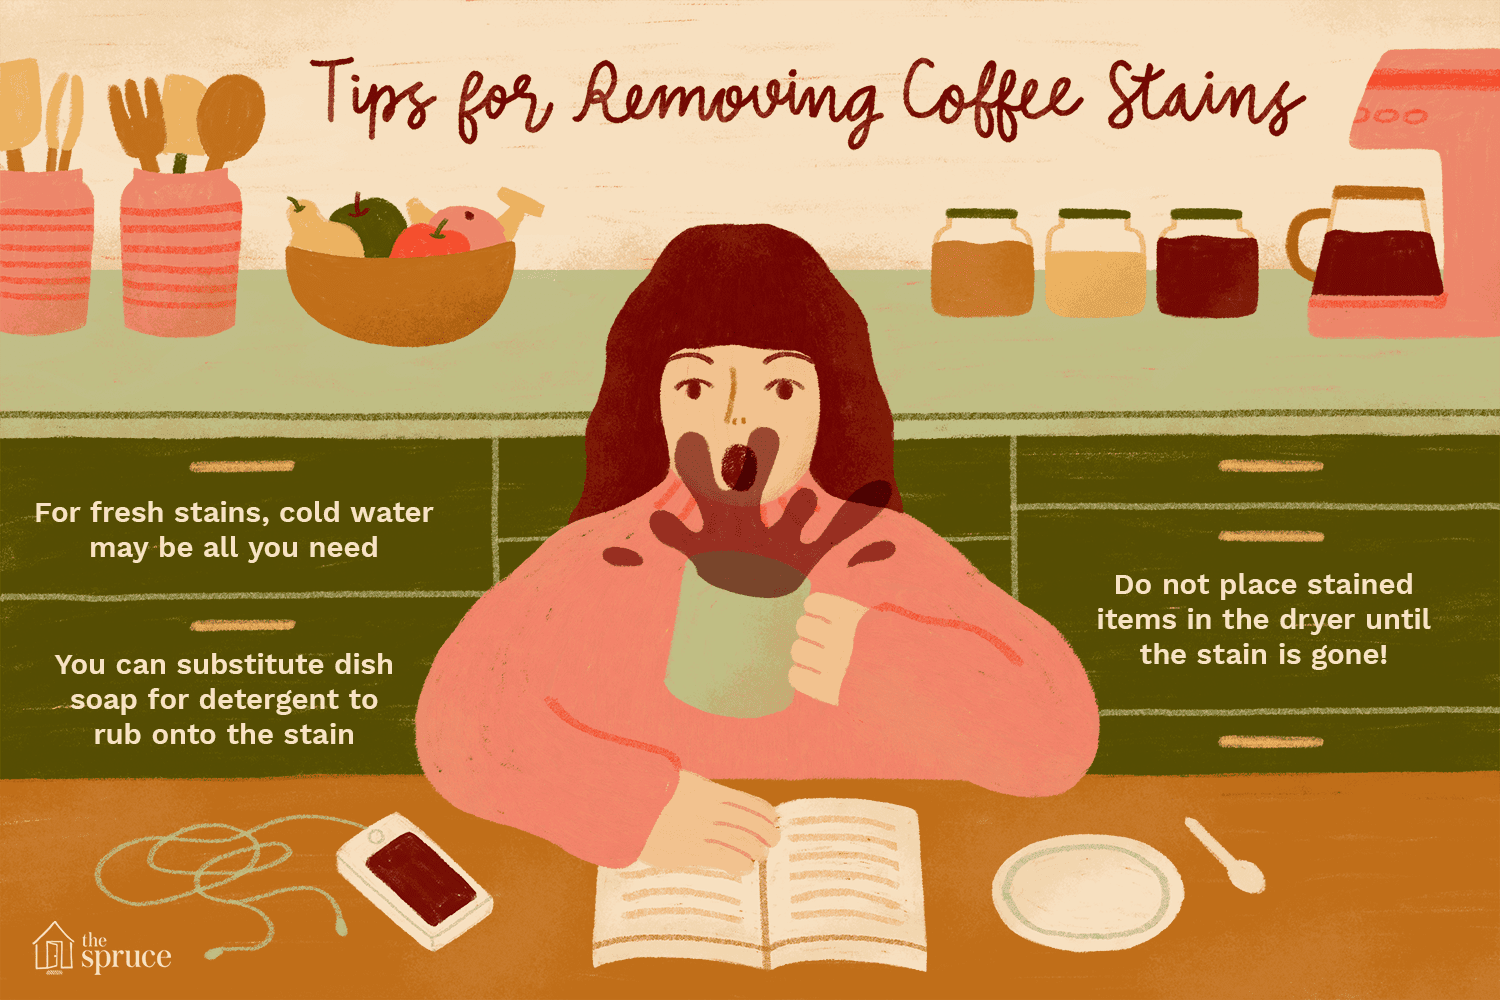 How To Remove Coffee Stains >> How To Remove Coffee Stains From Clothing